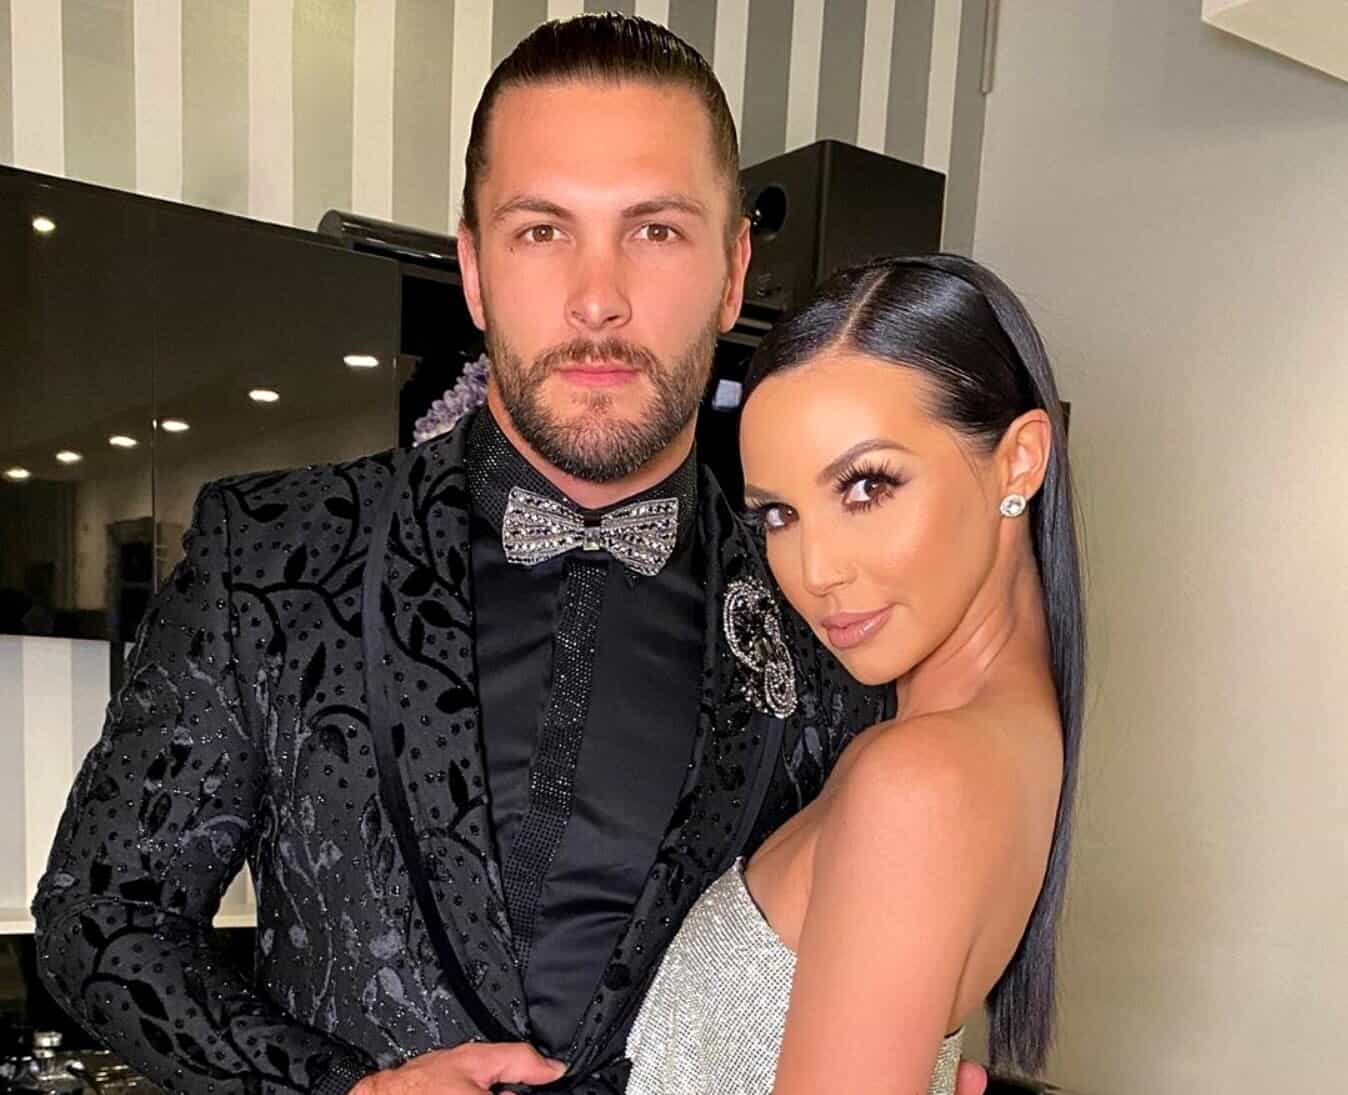 PHOTOS: Vanderpump Rules' Scheana Shay Shows Off Baby Bump in Stunning Maternity Photos With Boyfriend Brock Davies in Hawaii